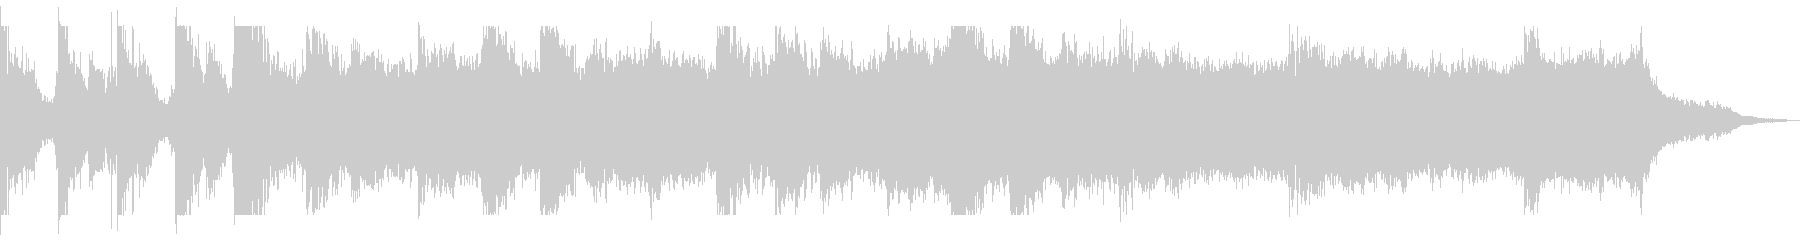 Serious documentary-style BGM's unreproduced waveform